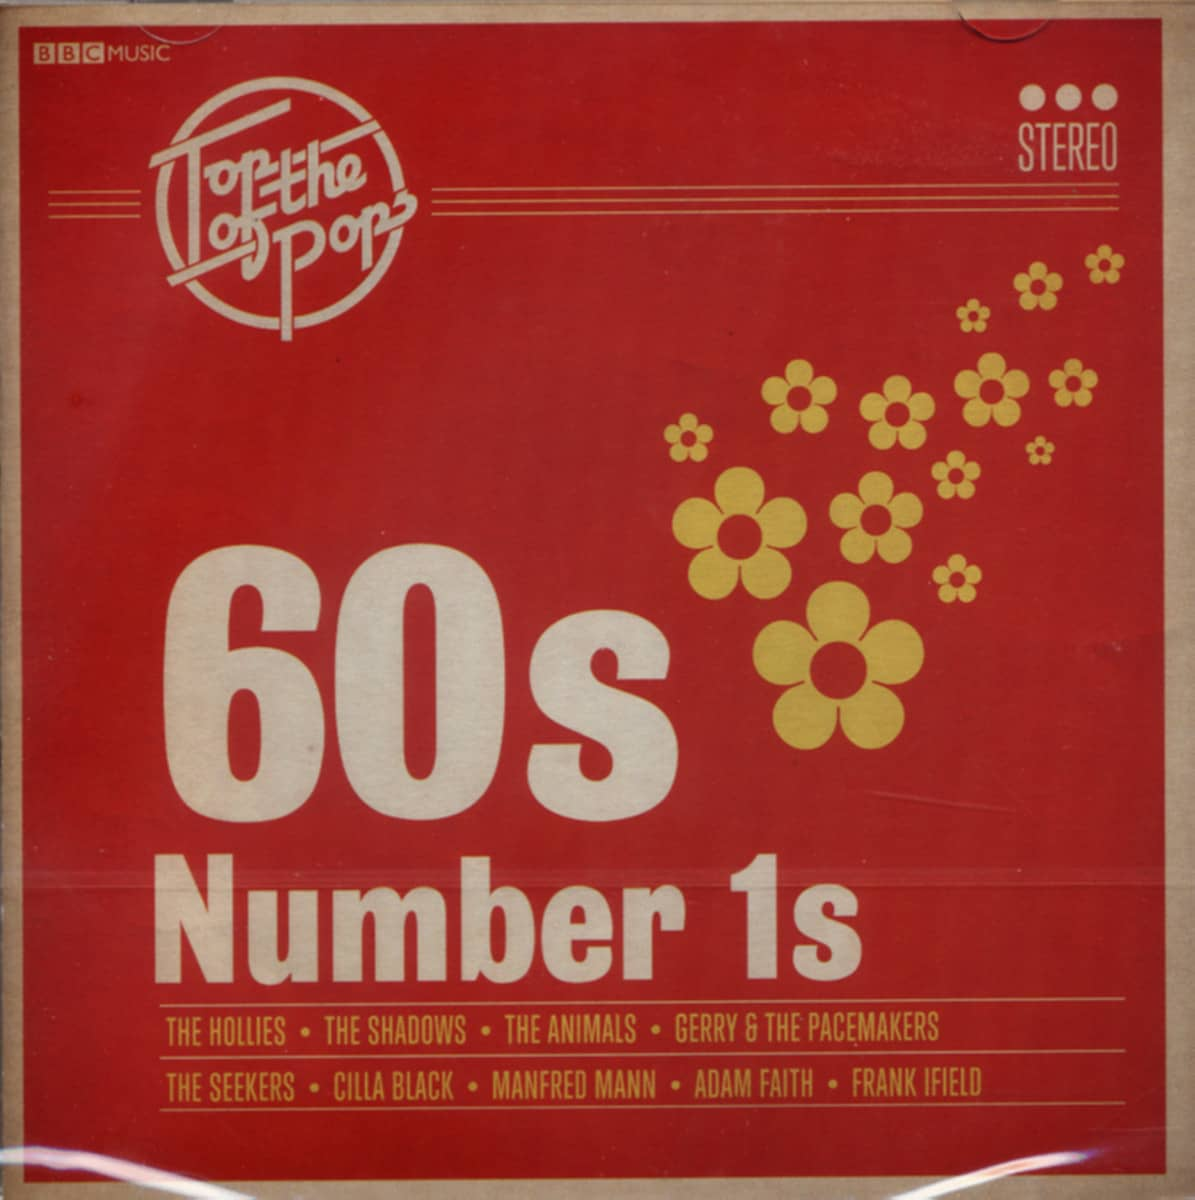 Various - Top Of The Pops - (BBC´s 60s Number 1s)